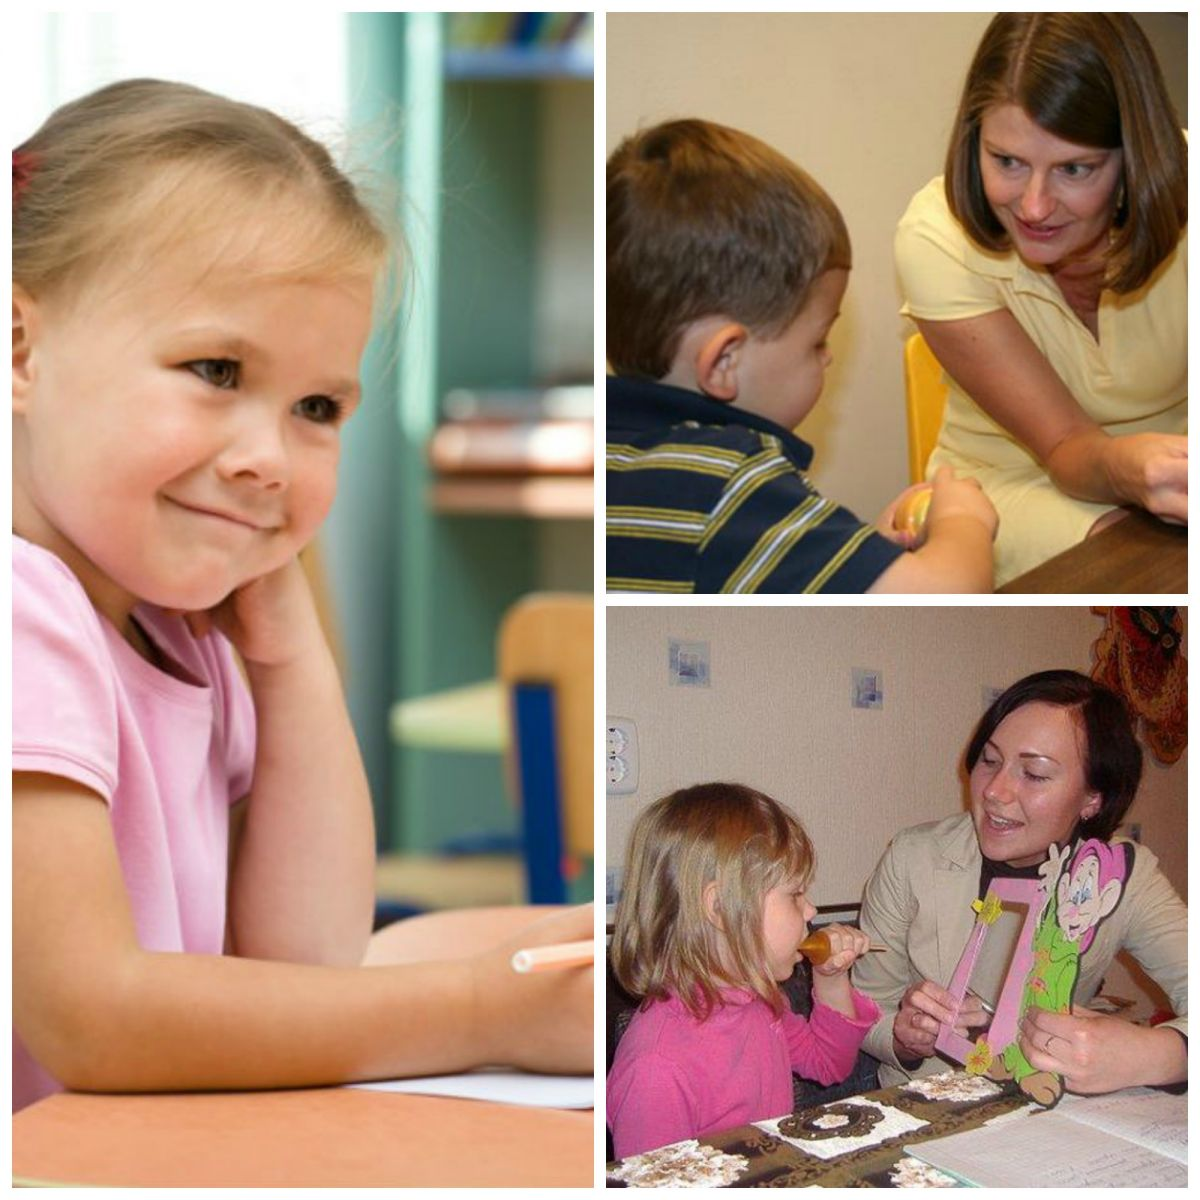 Defects of speech in children: what parents should know - image №5